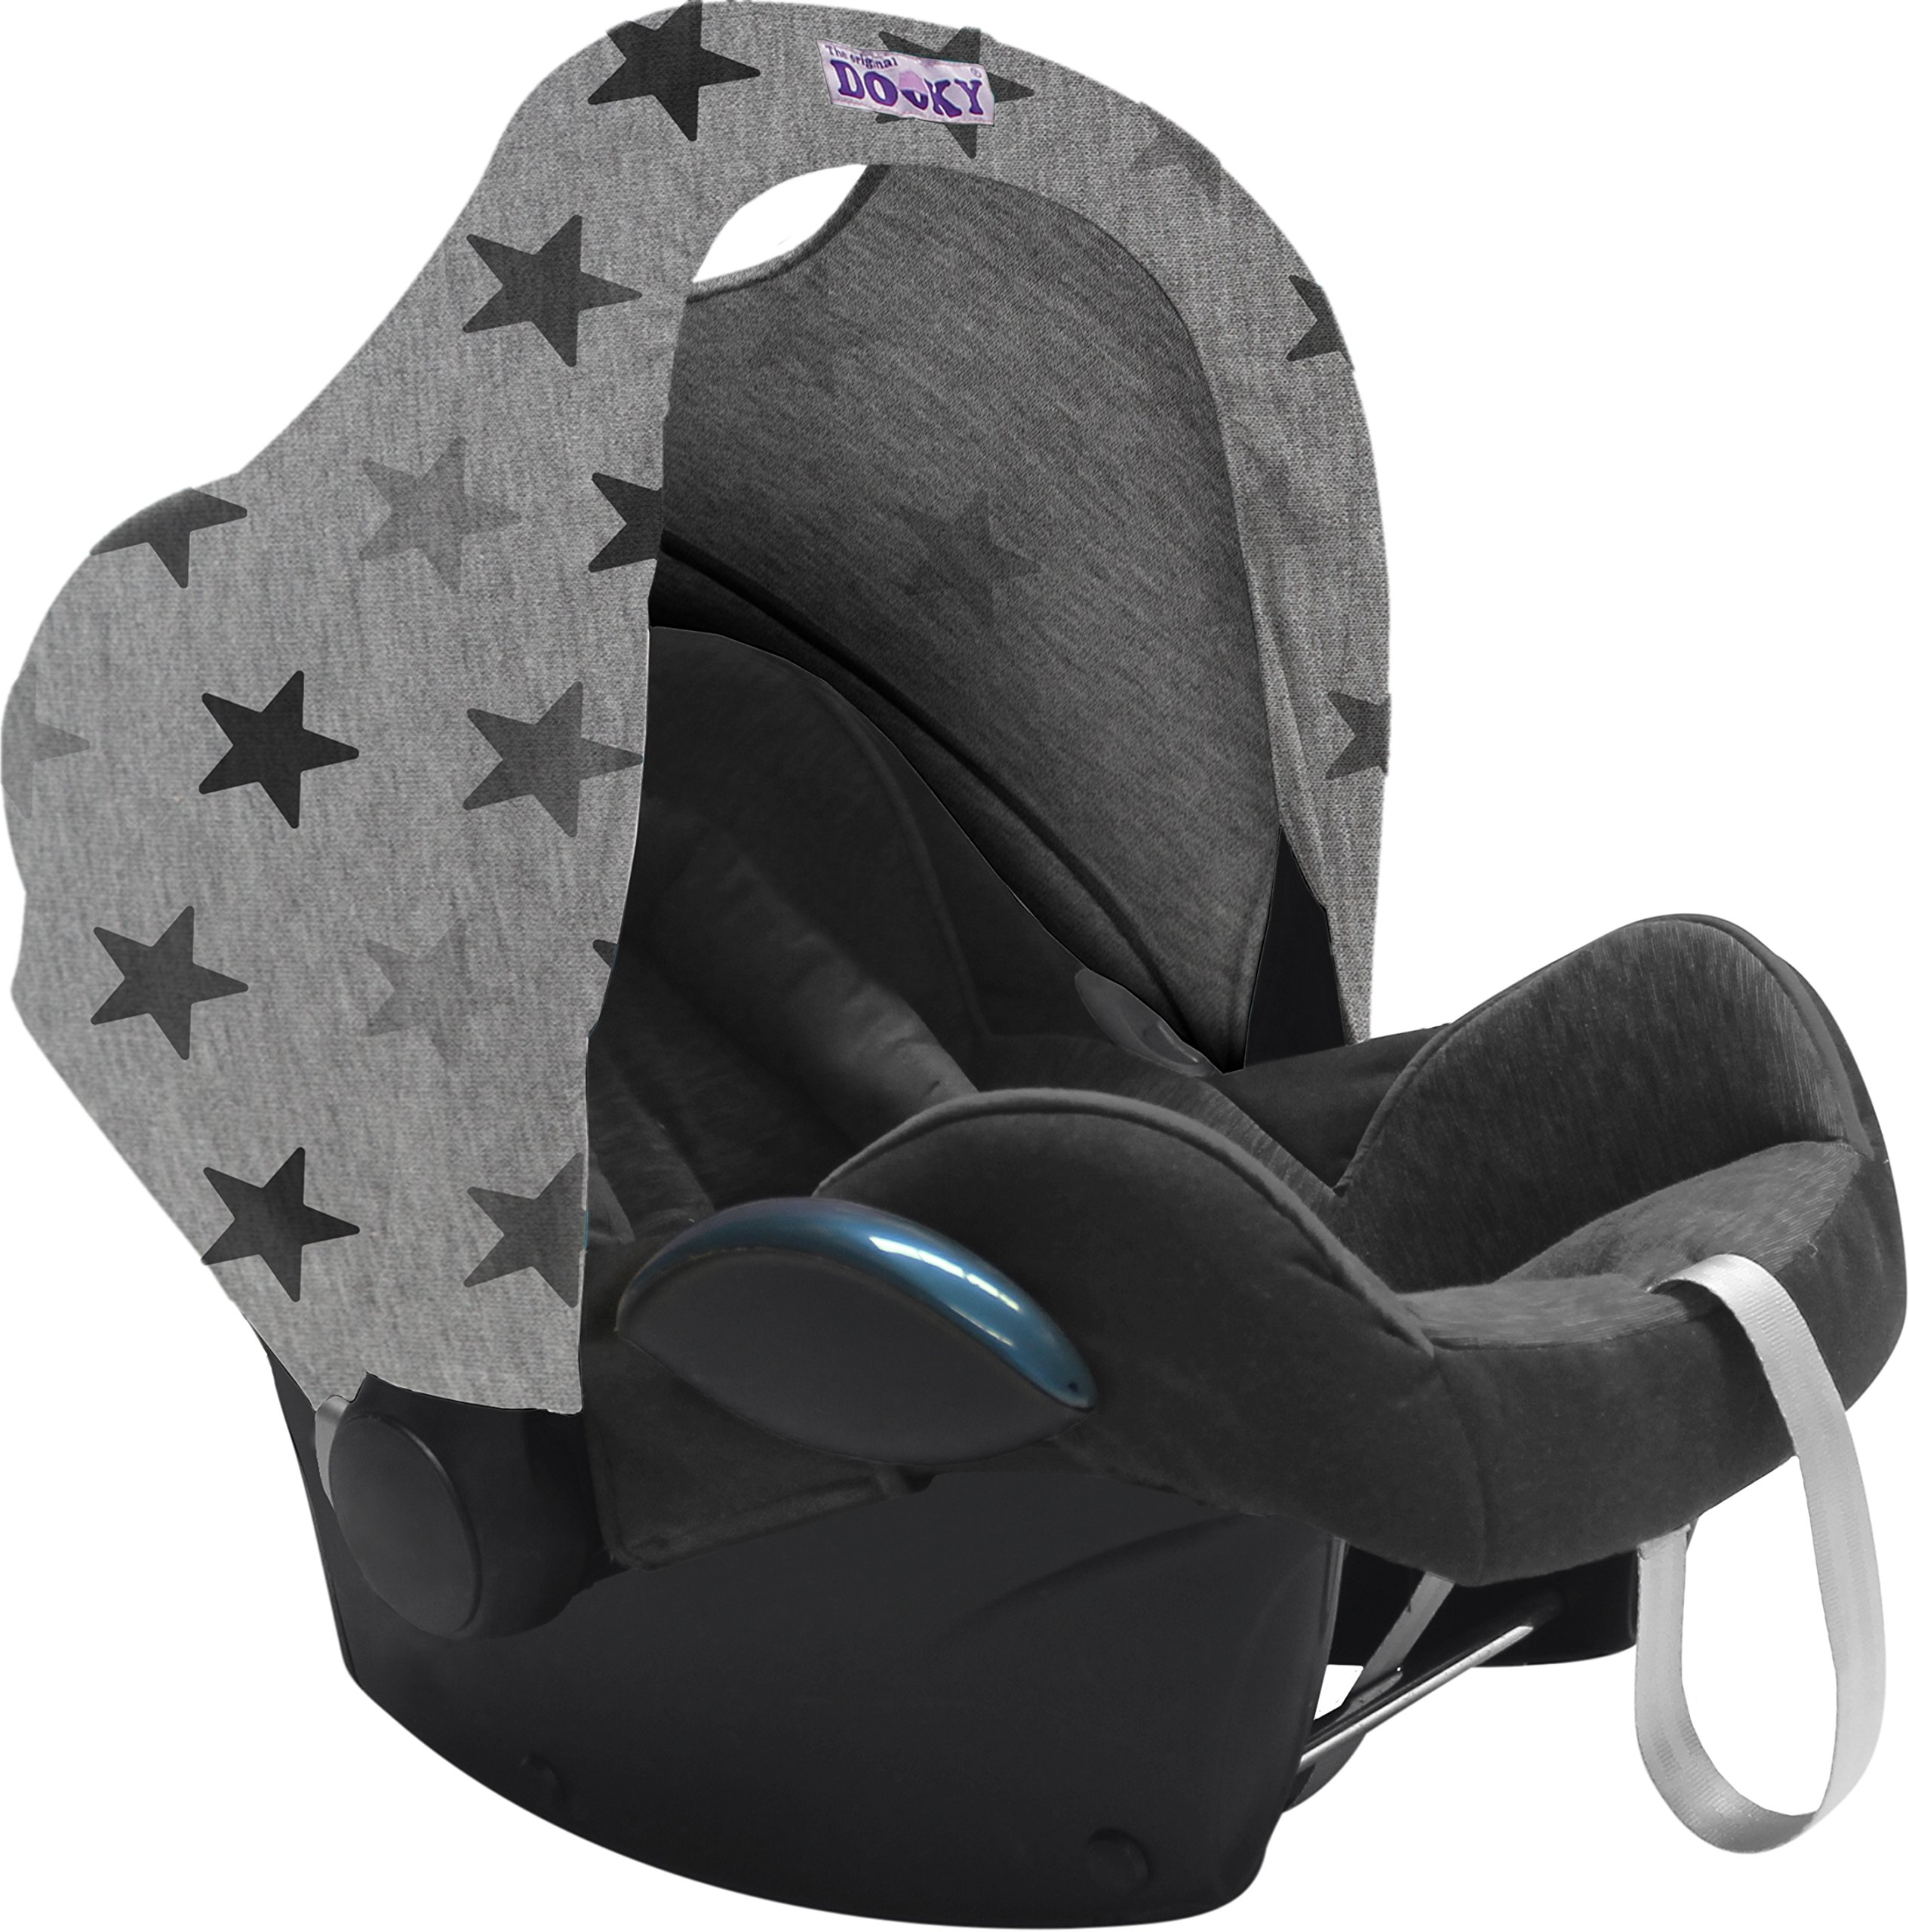 Dooky Hoody Replacement Infant Car Seat Hood Grey Stars (Dispatched From UK)